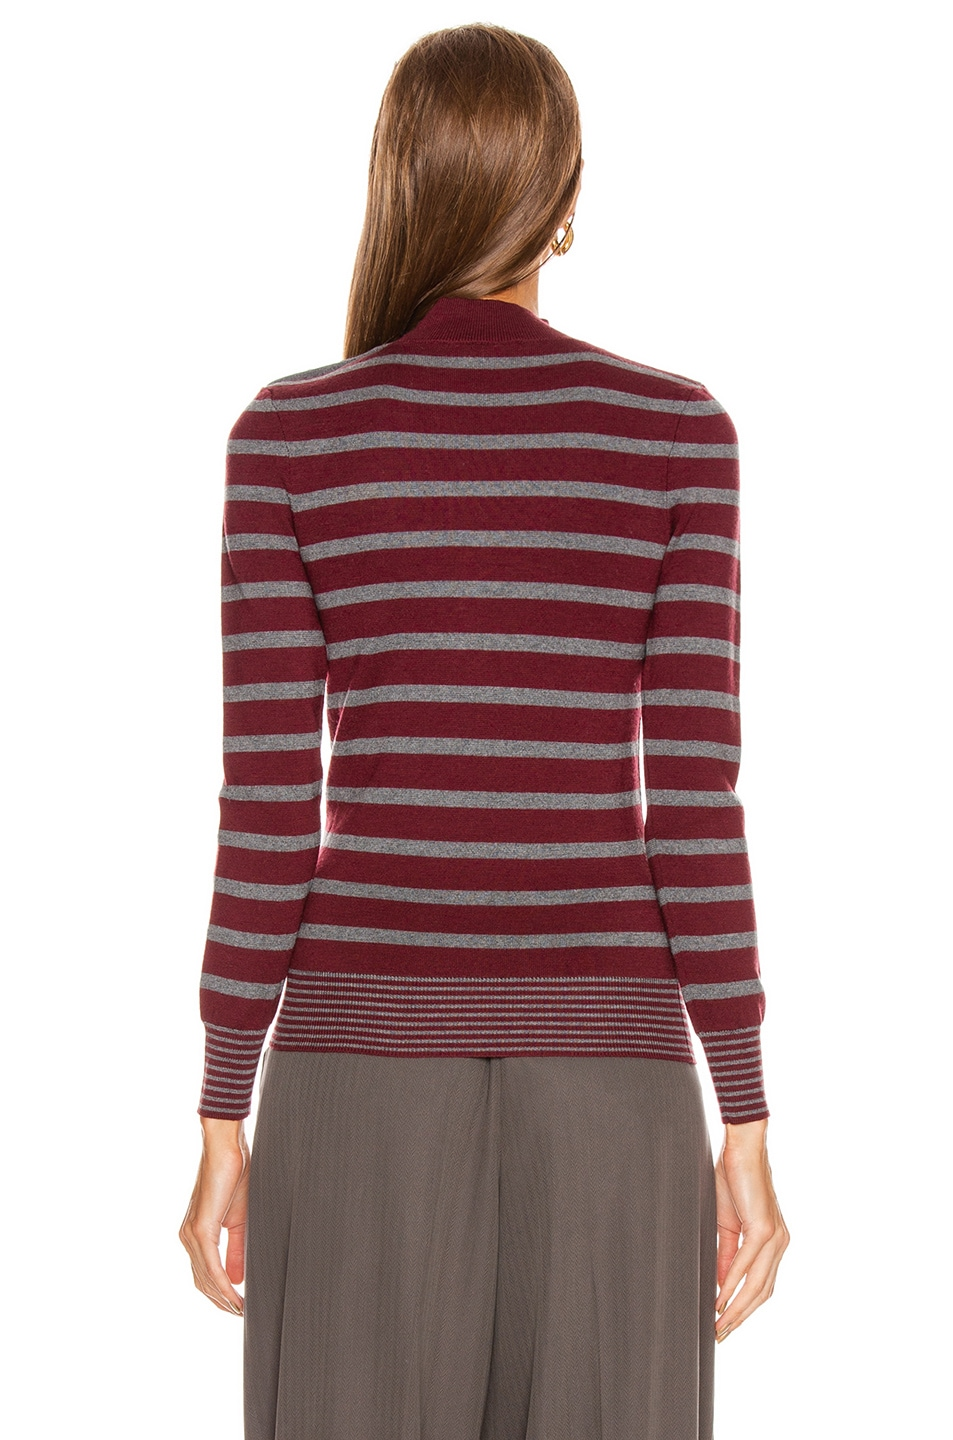 Image 3 of Stella McCartney Sailor Sweater in Burgundy & Grey